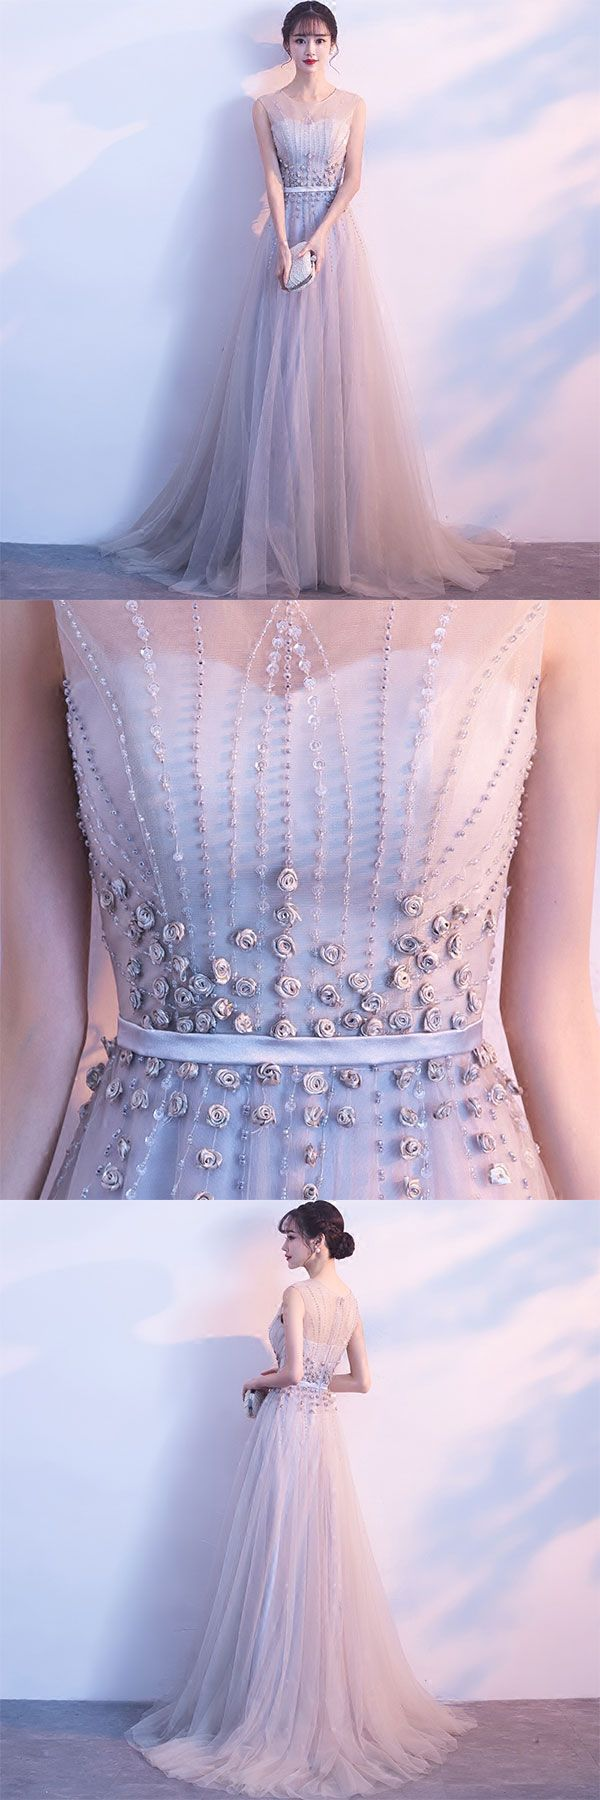 of girl | Gray tulle lace long prom dress, lace evening dress | Online Store Powered by Storenvy